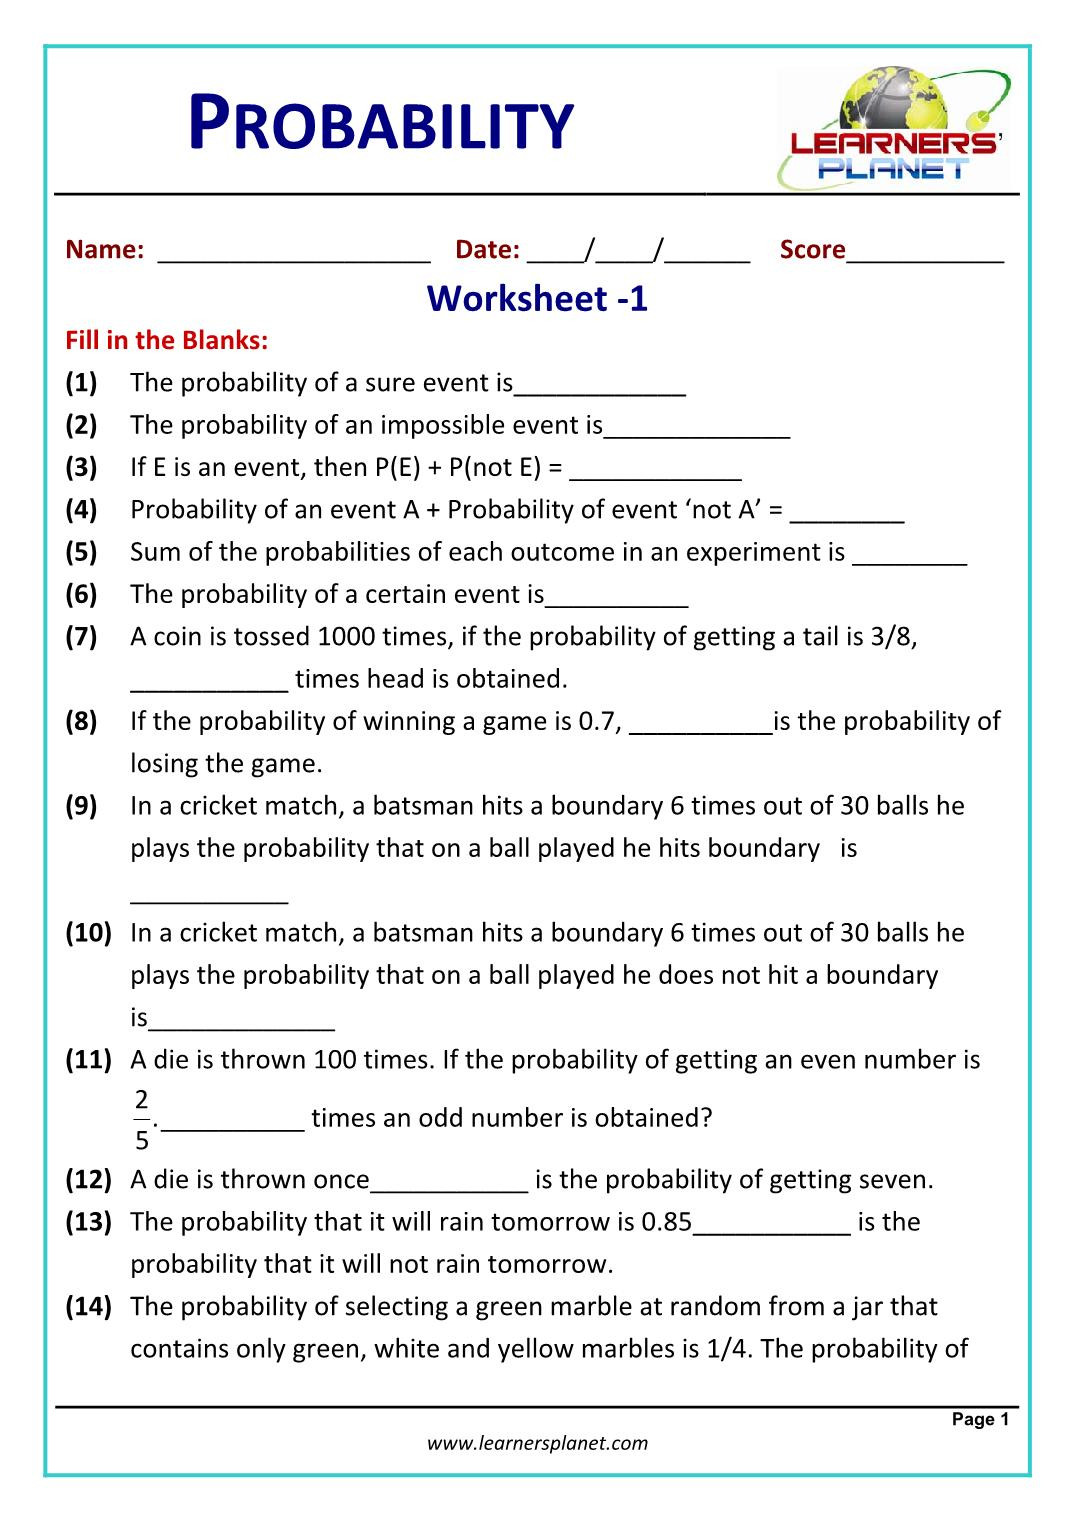 Probability Worksheet 4th Grade Rounding Decimals Green Eggs and Ham Worksheets Probability